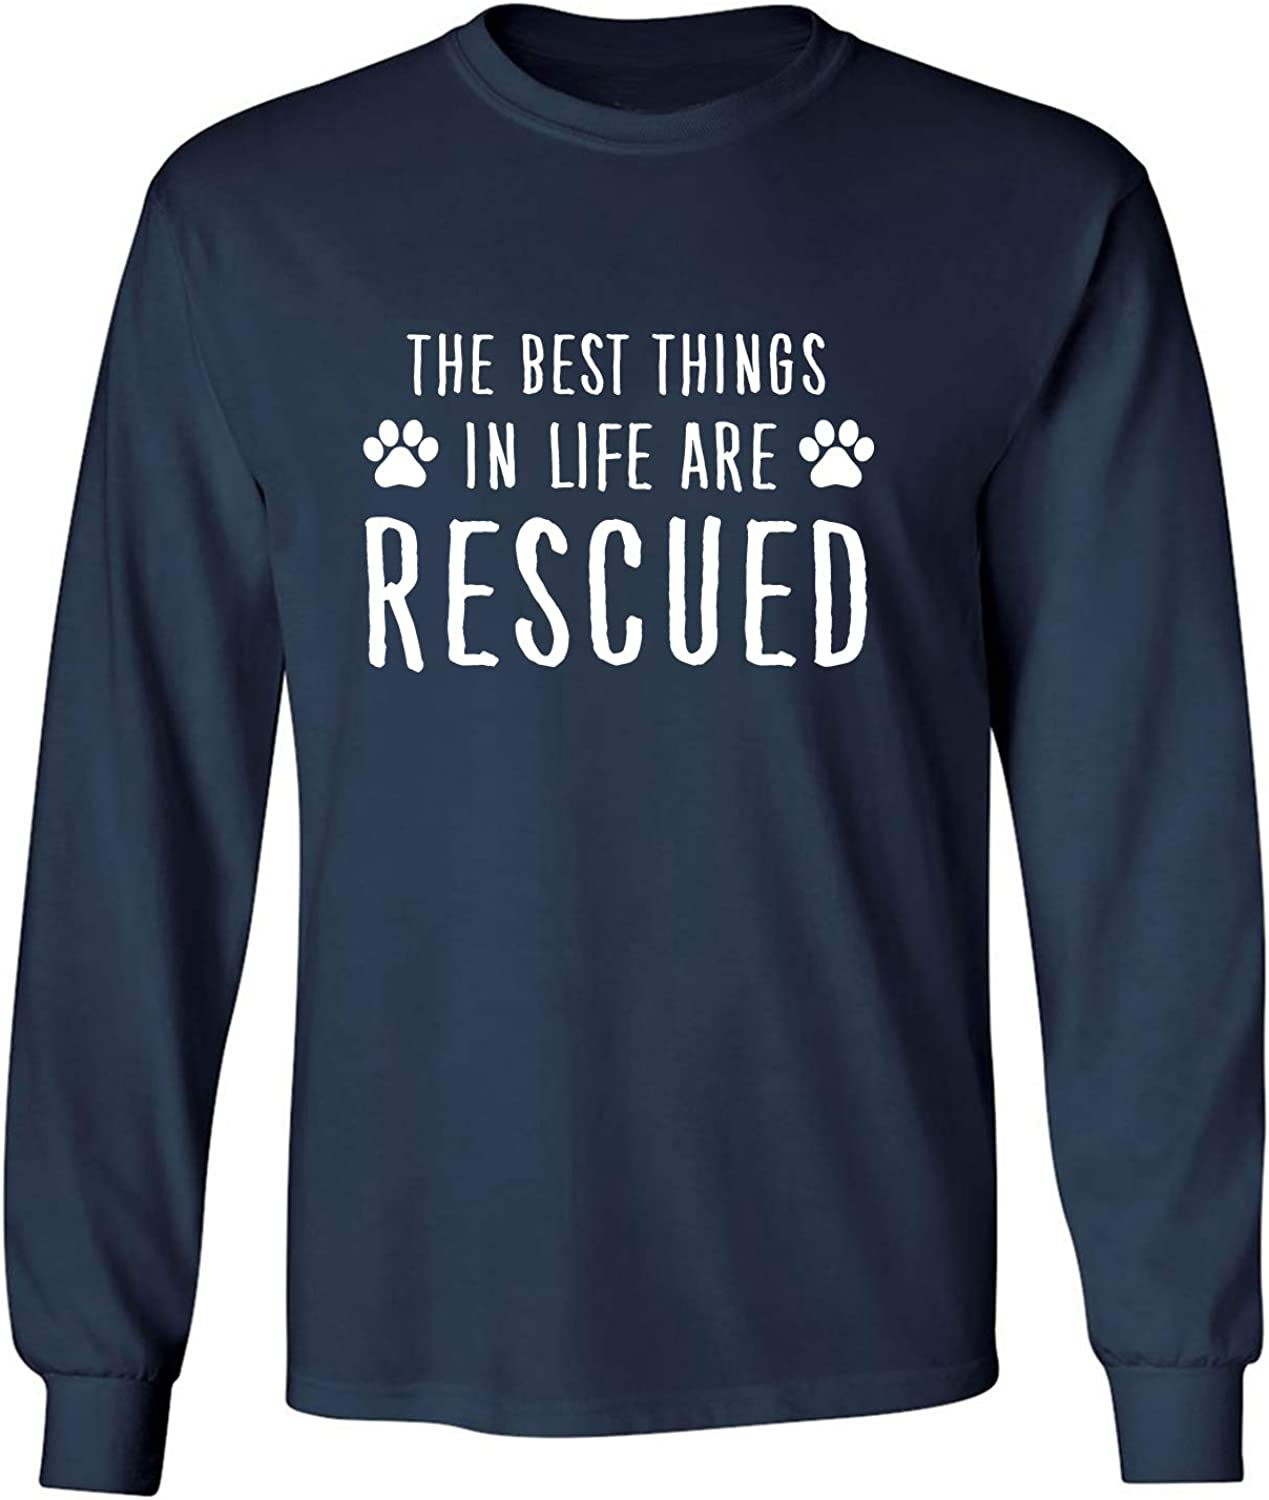 Best Things in Life are Rescued Adult Long Sleeve T-Shirt in Navy - XXX-Large